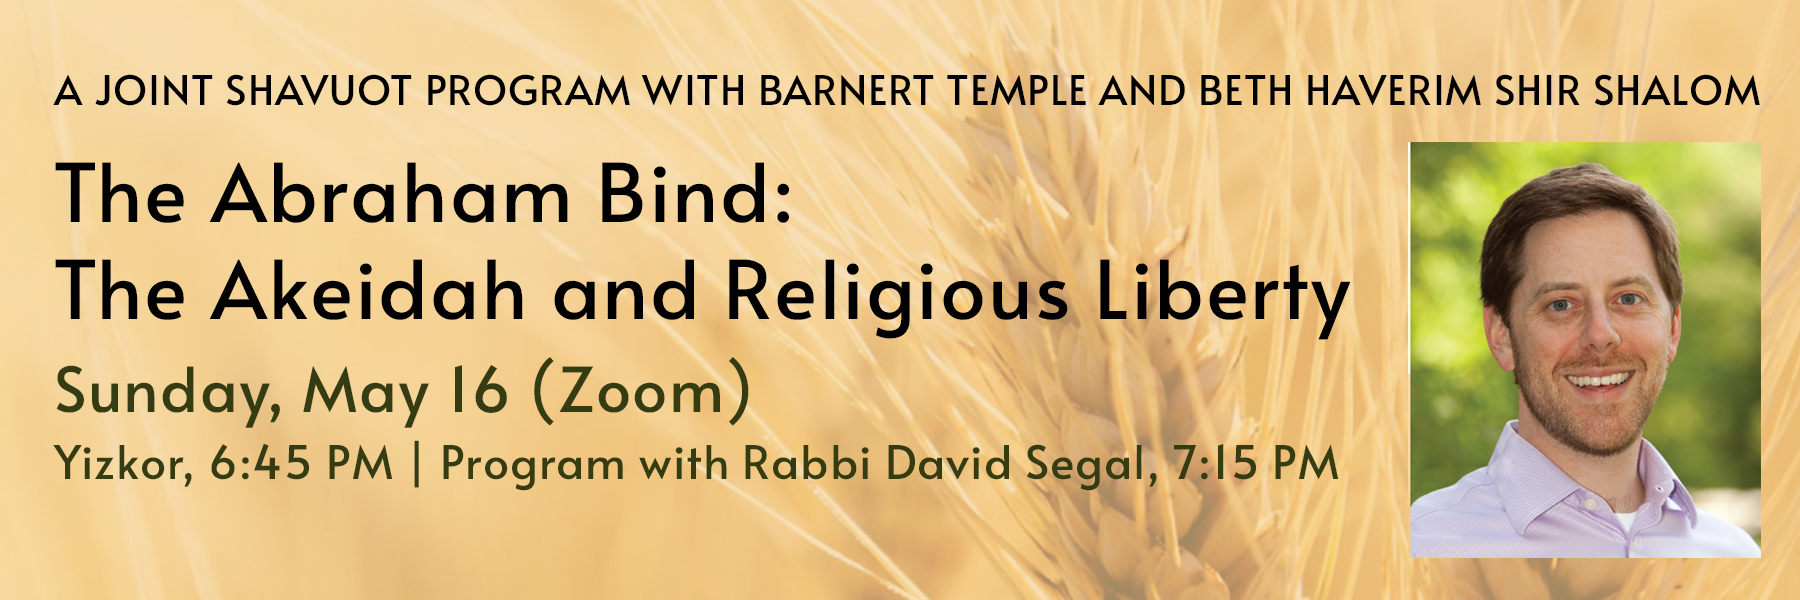 """<a href=""""https://www.barnerttemple.org/event/joint-yizkor-and-shavuot-celebration-with-beth-haverim-shir-shalom.html""""                                     target=""""_blank"""">                                                                 <span class=""""slider_title"""">                                     Celebrate Shavuot                                </span>                                                                 </a>                                                                                                                                                                                       <span class=""""slider_description"""">Rabbi Segal's session will focus on contemporary contemplations of free expressions of faith when applied to the Akeidah, the biblical account of the binding of Isaac.  Click above for details.</span>"""